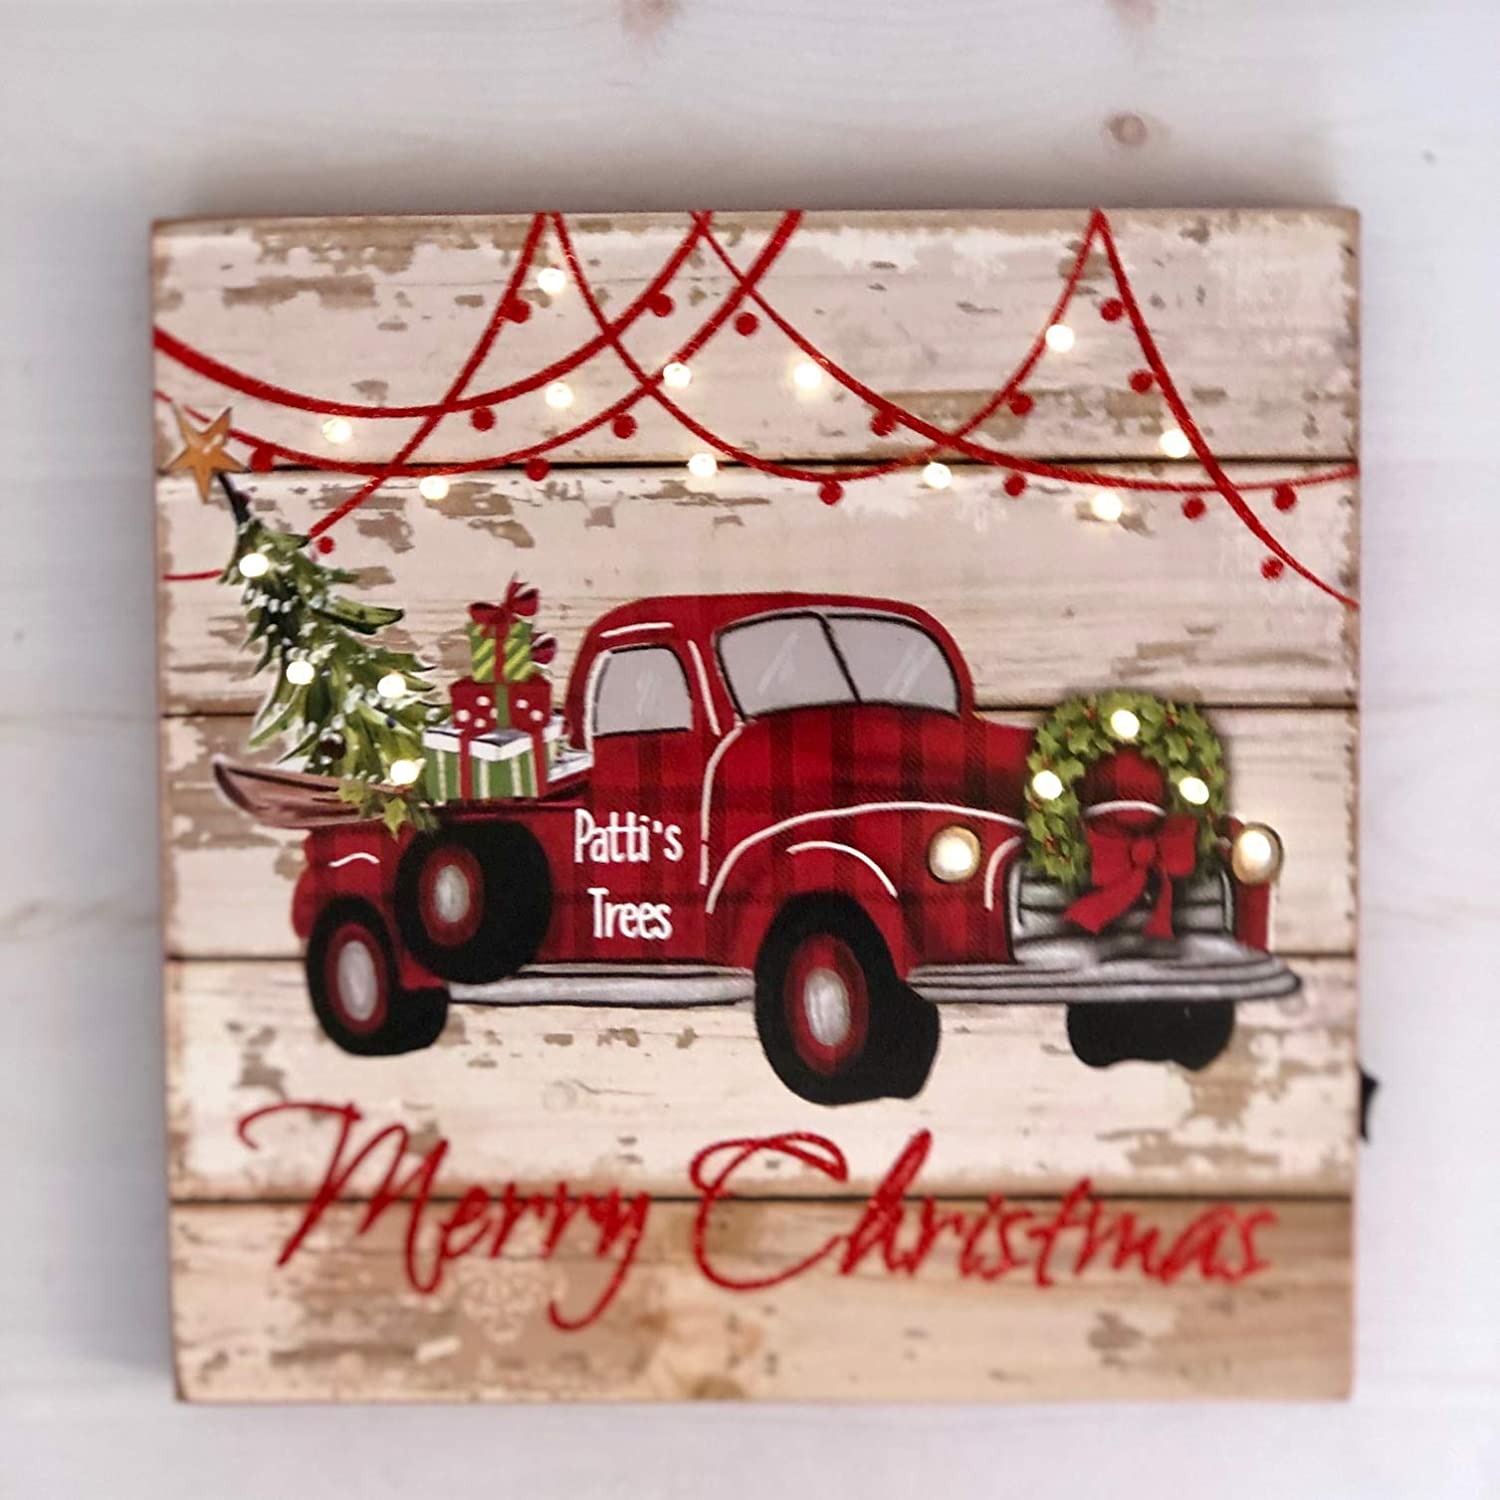 Amazon Com Bringing Home The Tree Vintage Red Truck Christmas Decor Farmhouse Sign Buffalo Check Plaid Rustic Home Decoration Handmade